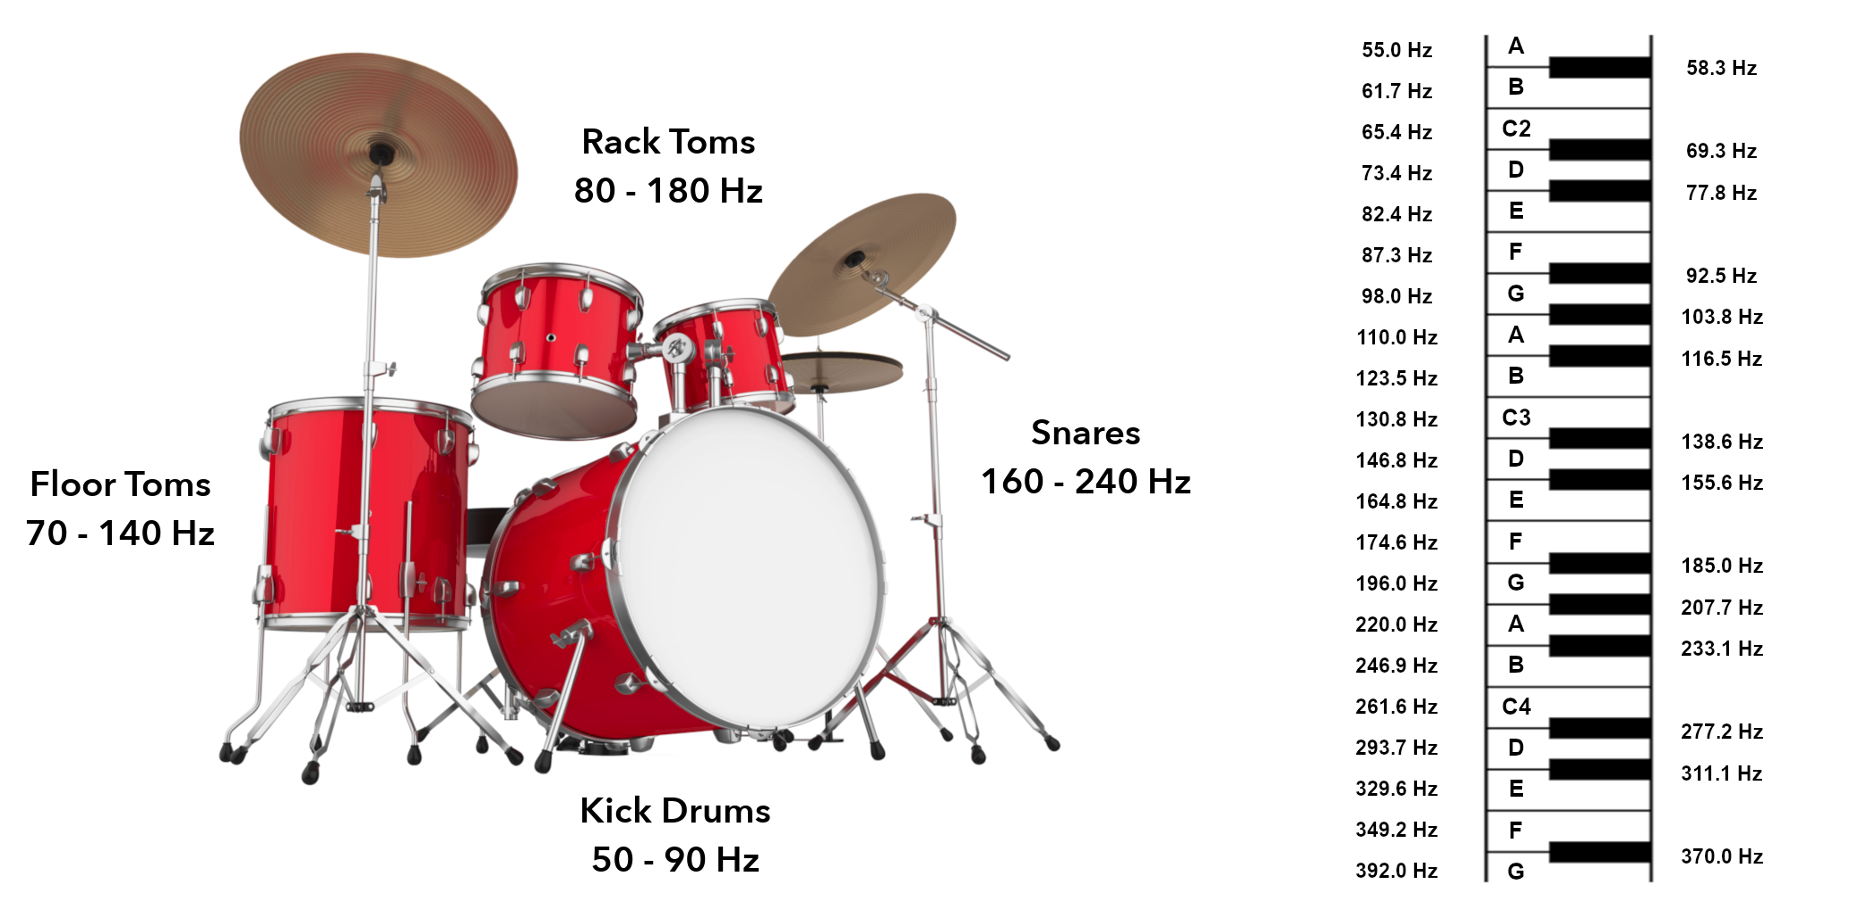 tuning the pitch of each drum kit